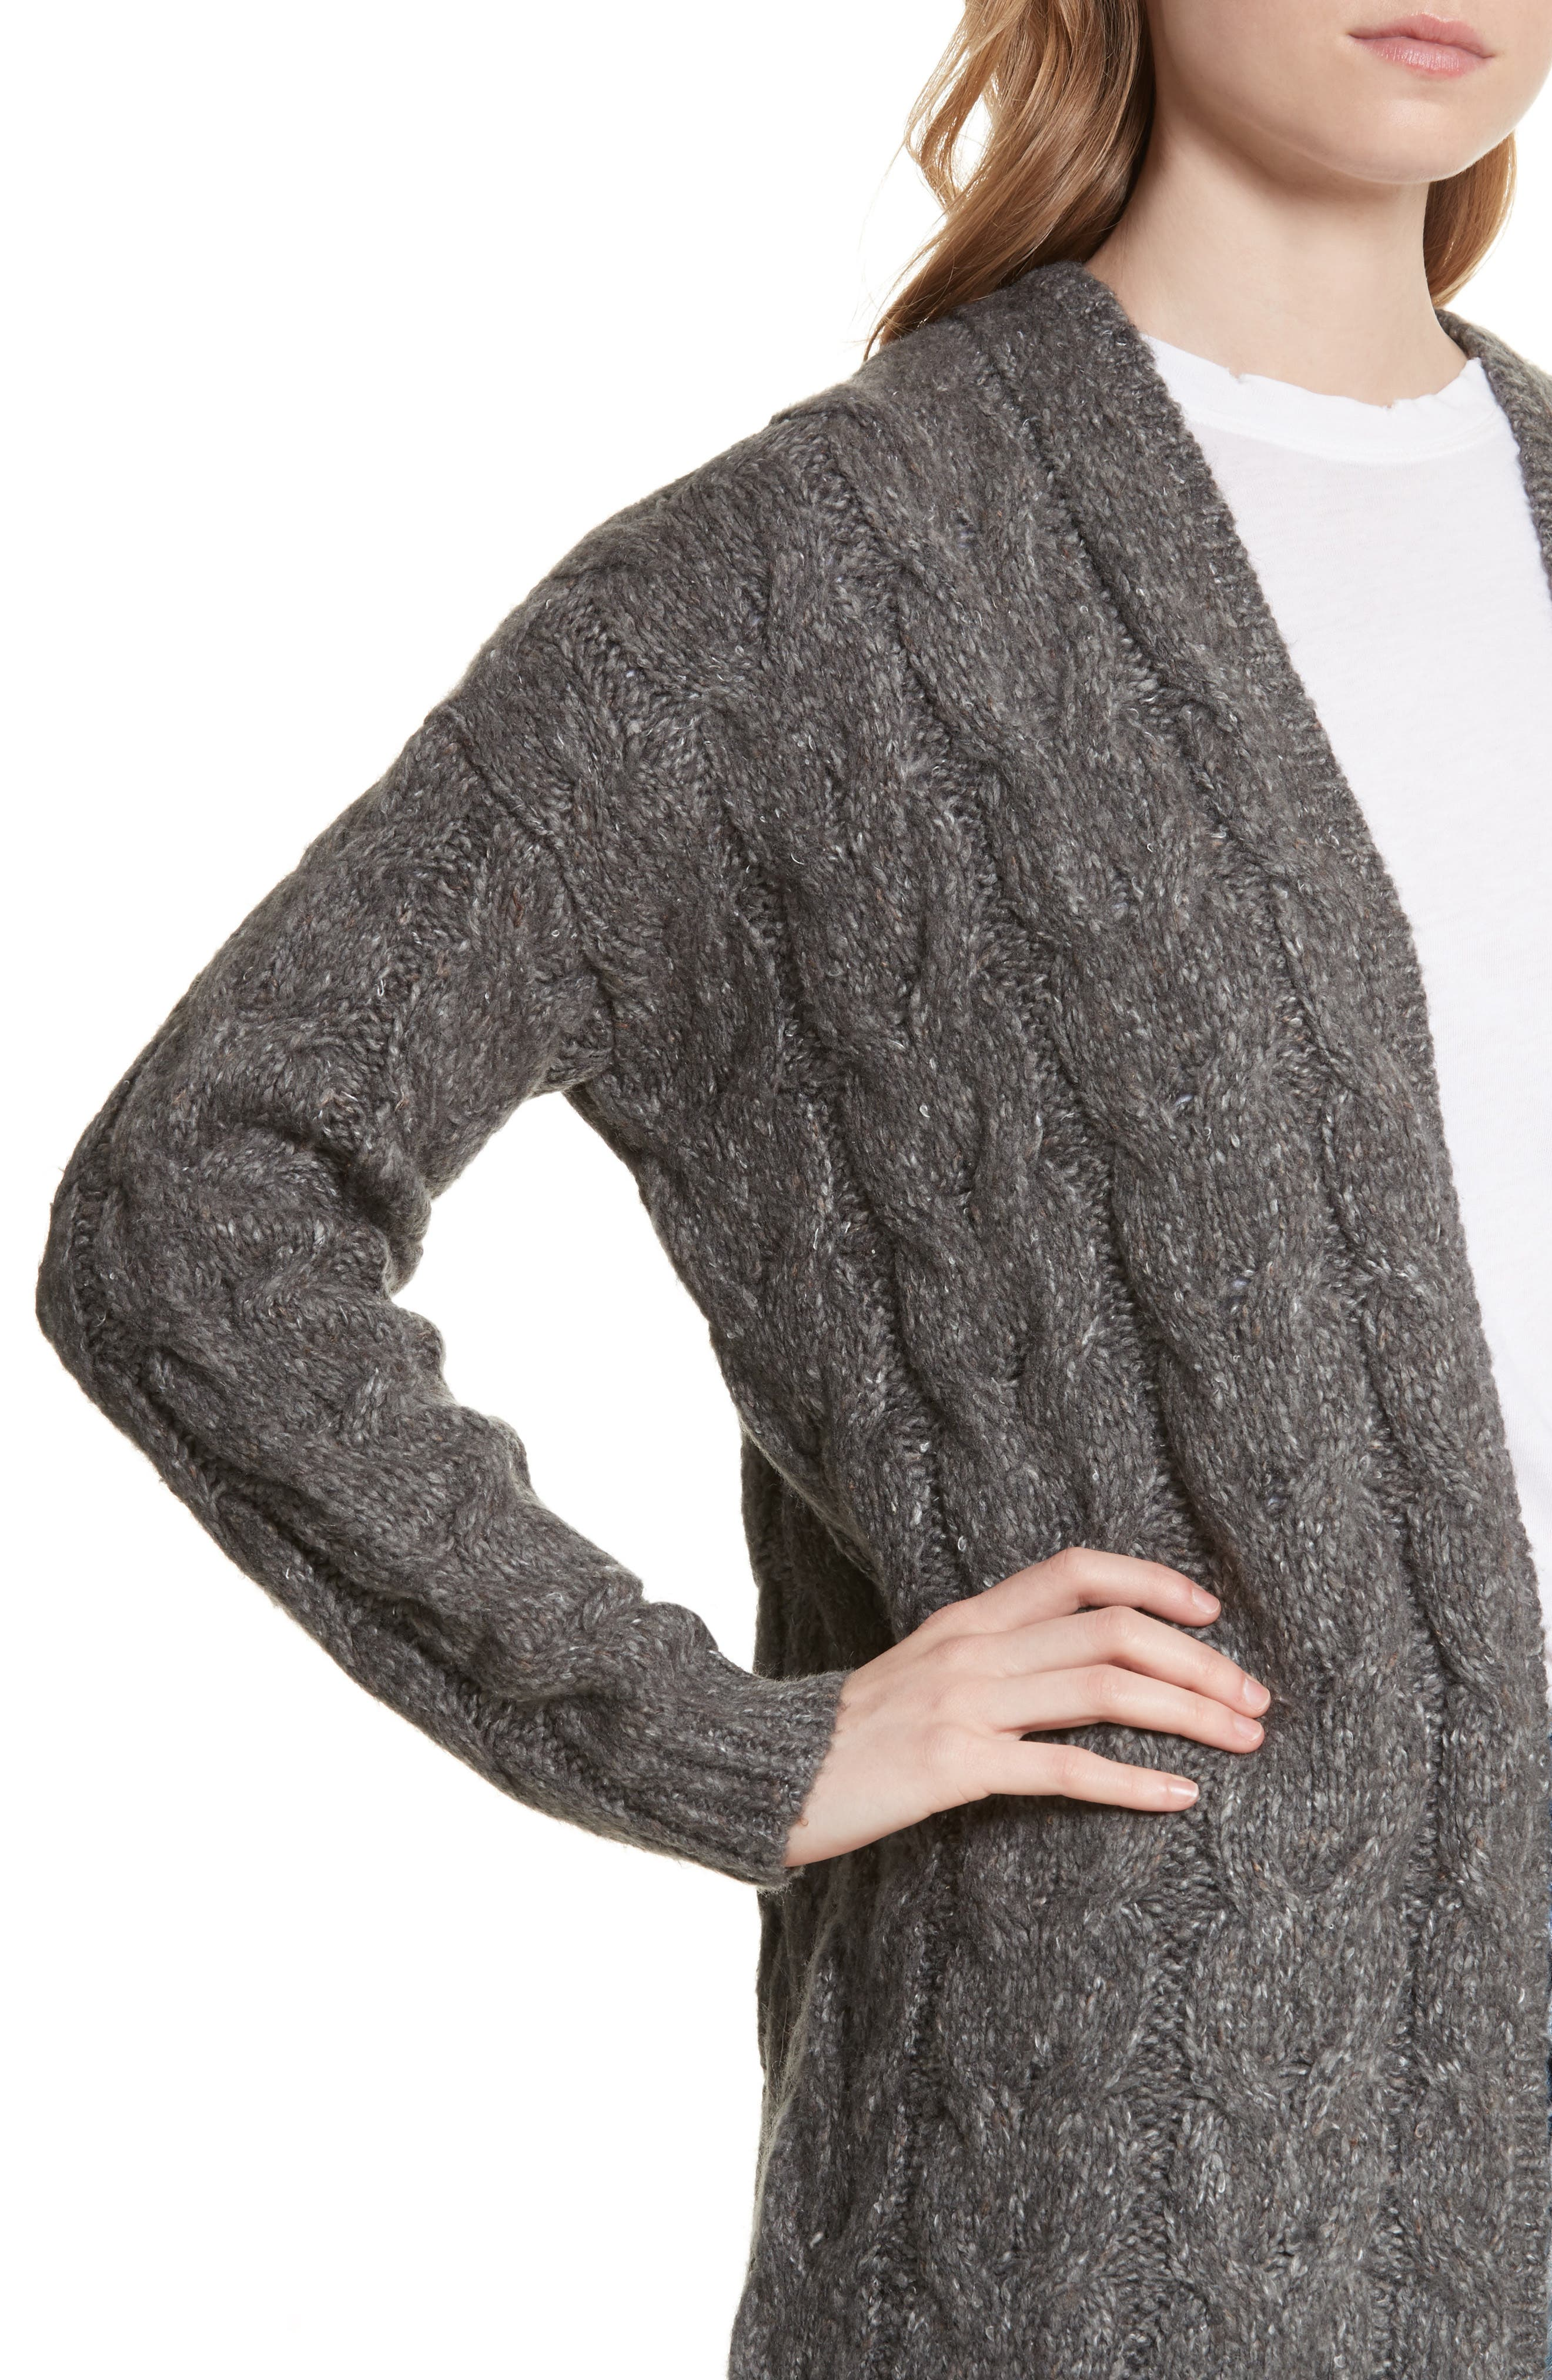 Tienna Cable-Knit Cardigan,                             Alternate thumbnail 4, color,                             076